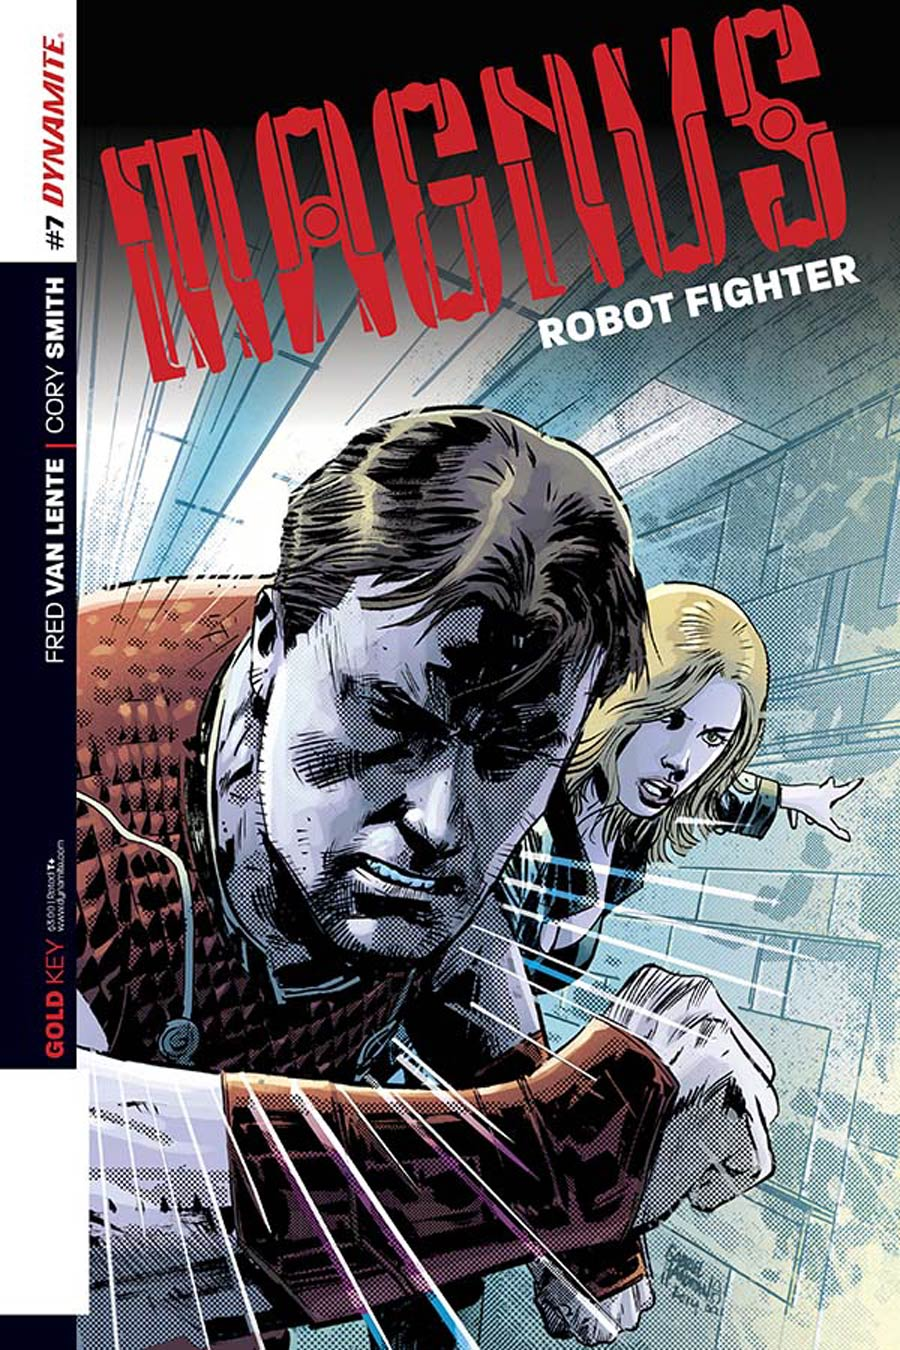 Magnus Robot Fighter Vol 4 #7 Cover A Regular Gabriel Hardman Cover